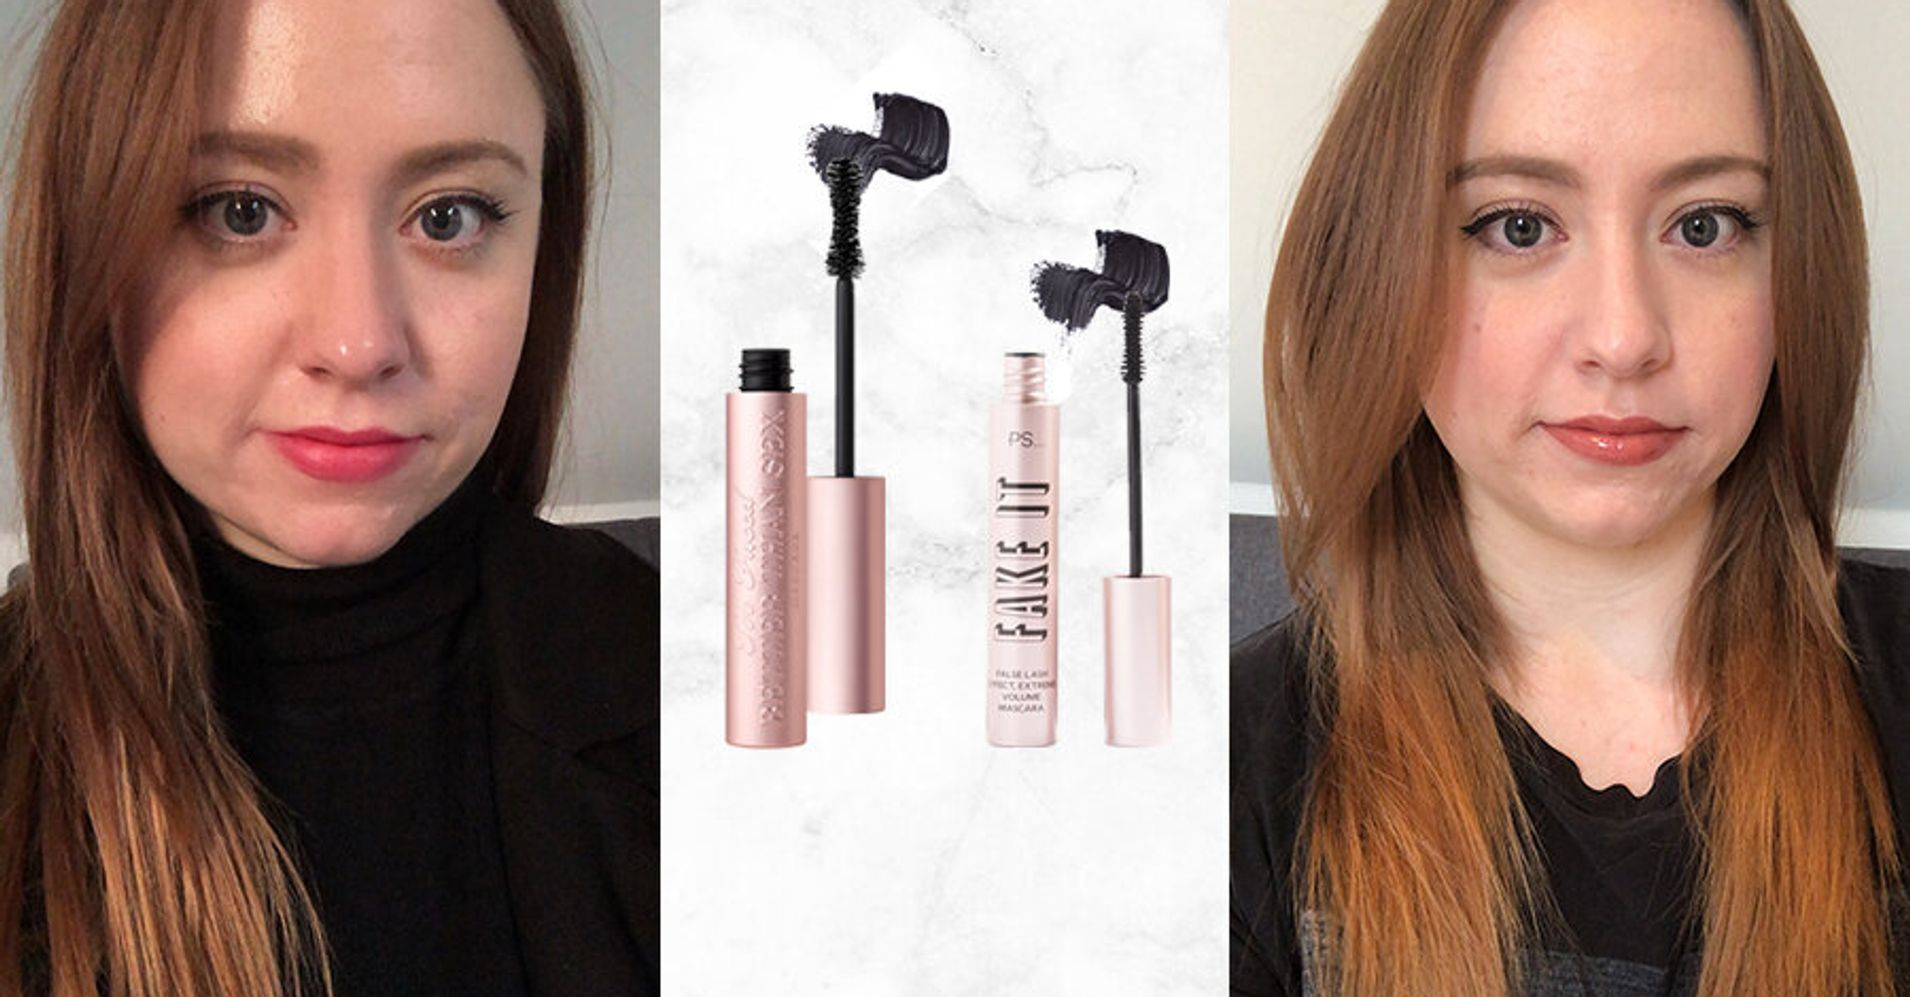 6a3c03e36a2 How Does Primark's Dupe Of Too Faced's Better Than Sex Mascara Measure Up  To The Real Thing? | HuffPost Life